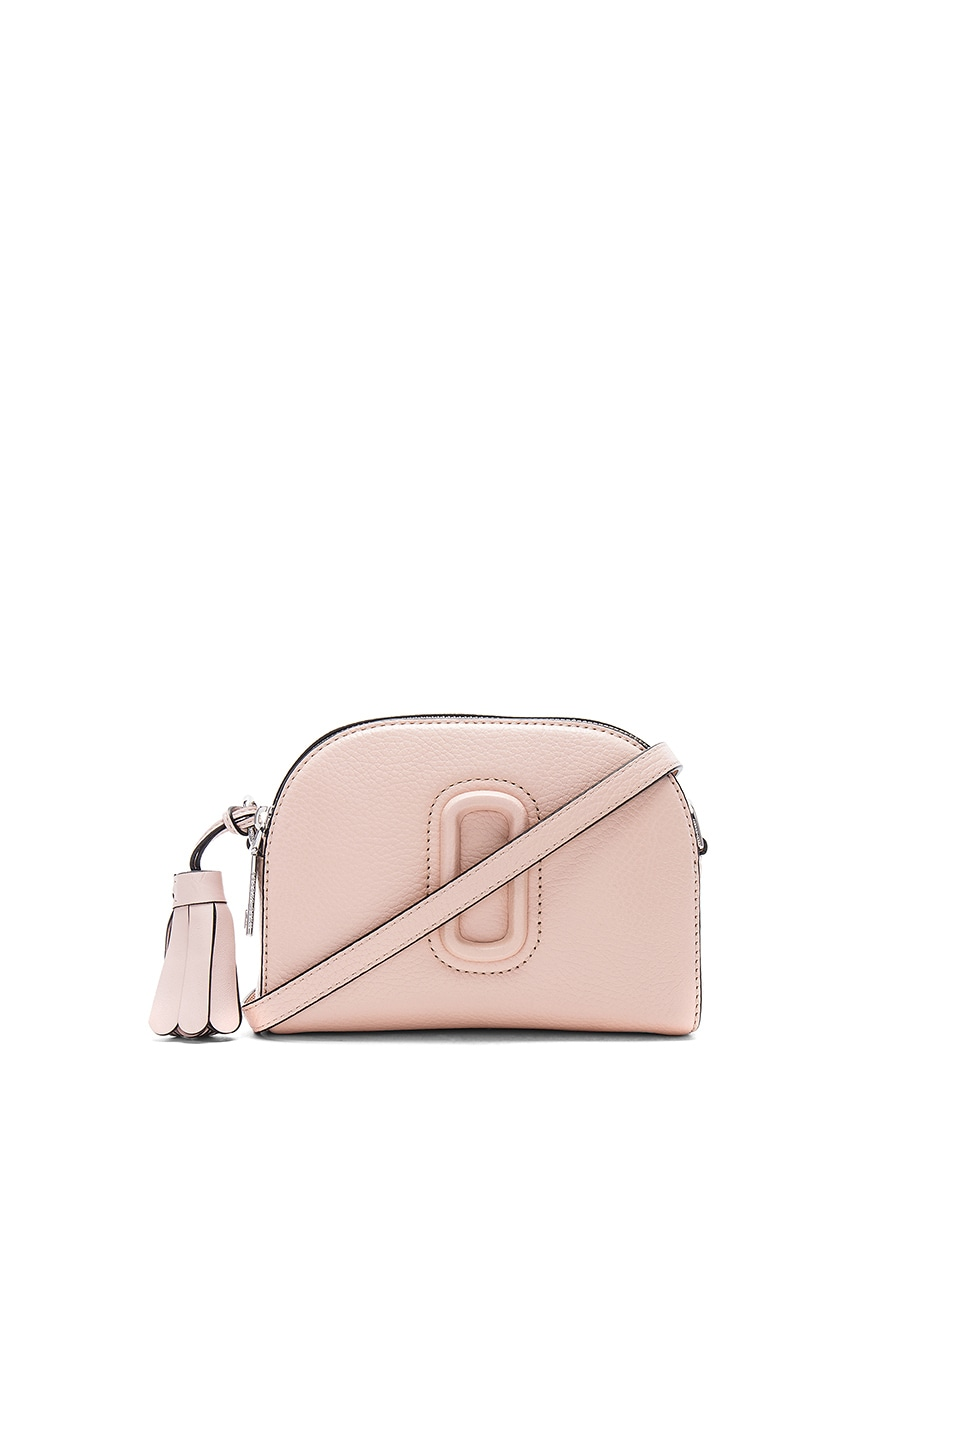 fd156729f92c Marc Jacobs Shutter Small Camera Bag in Pale Pink